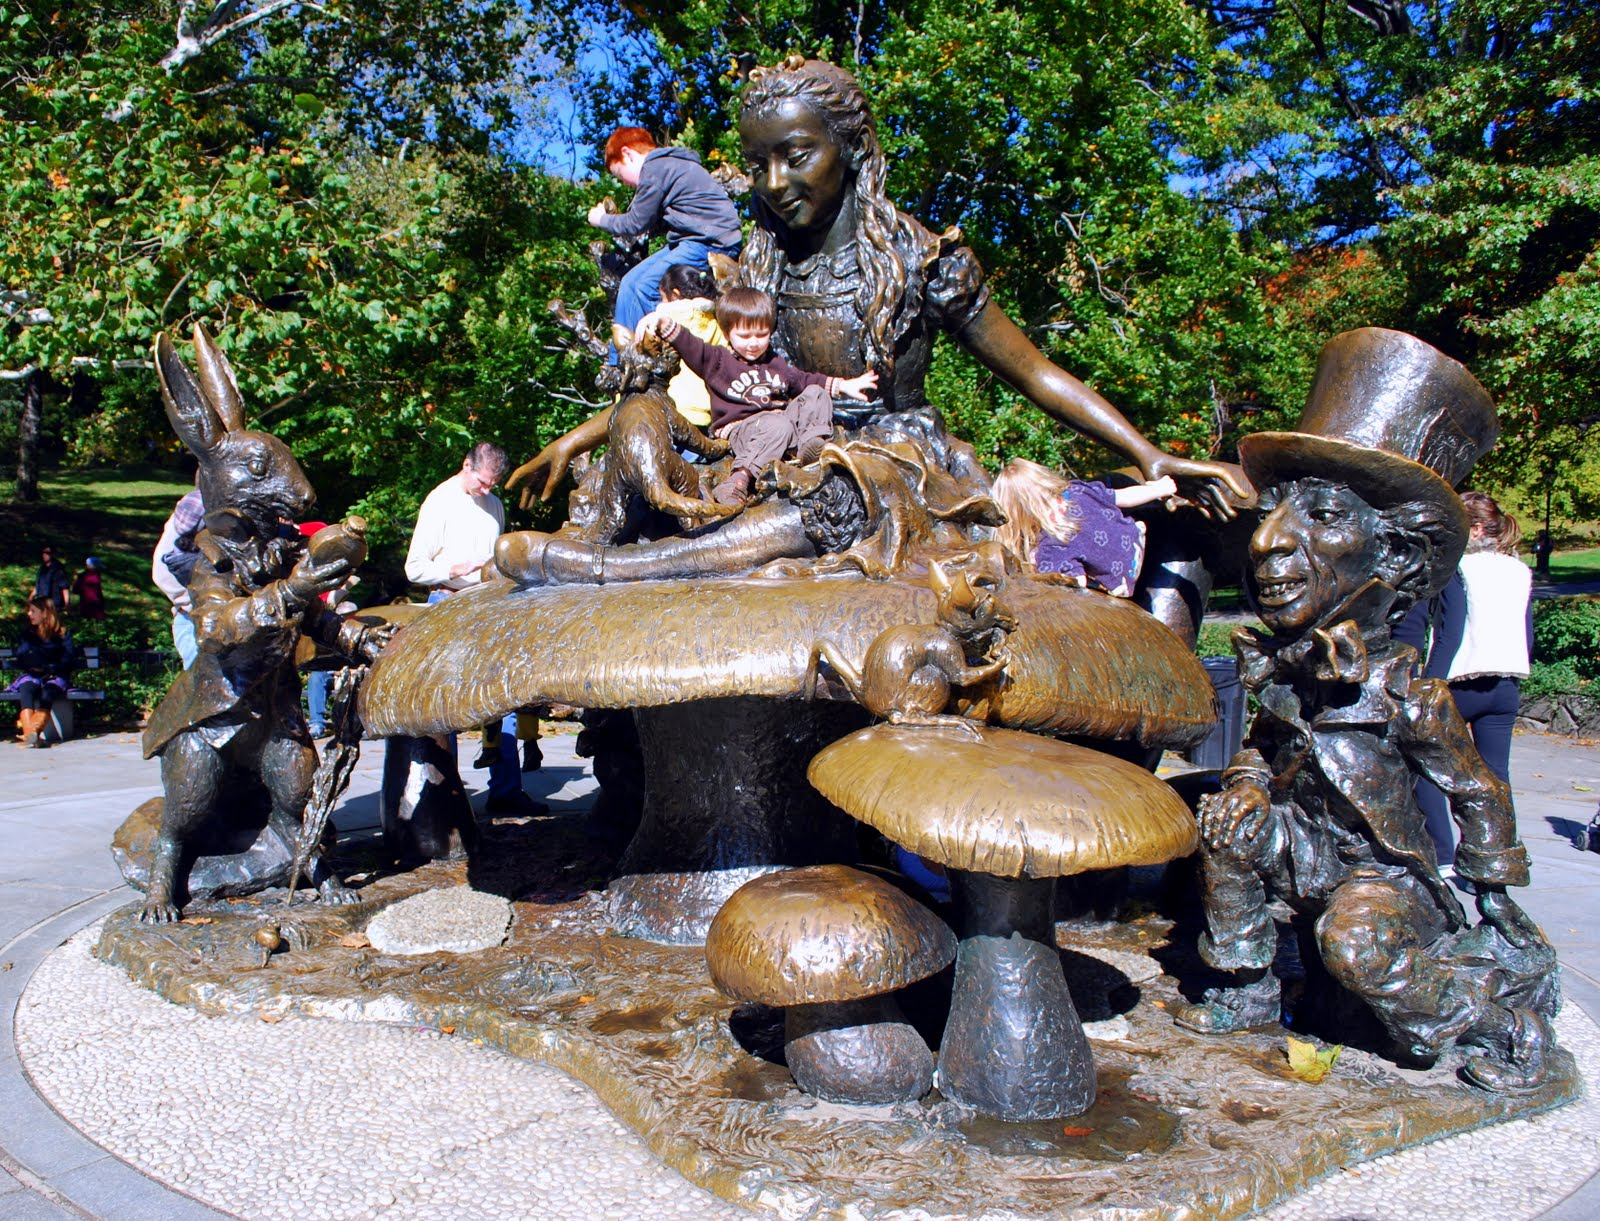 Mille fiori favoriti alice in wonderland in central park for Thing to do new york